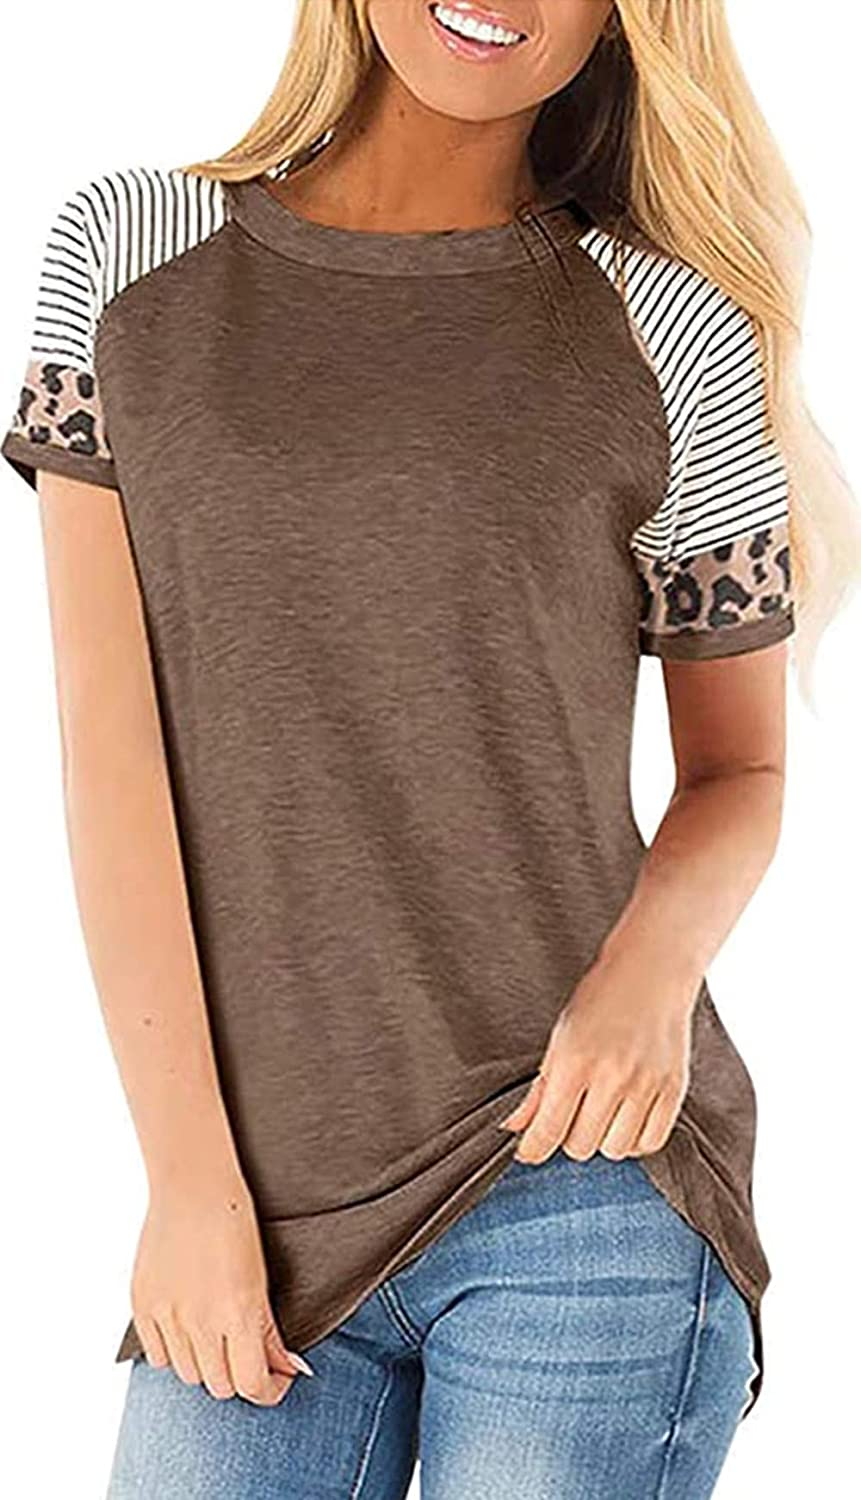 other562 Womens Long Sleeve Leopard Tops Color Block Striped Round Neck Casual Tunic T Shirt Top Blouse